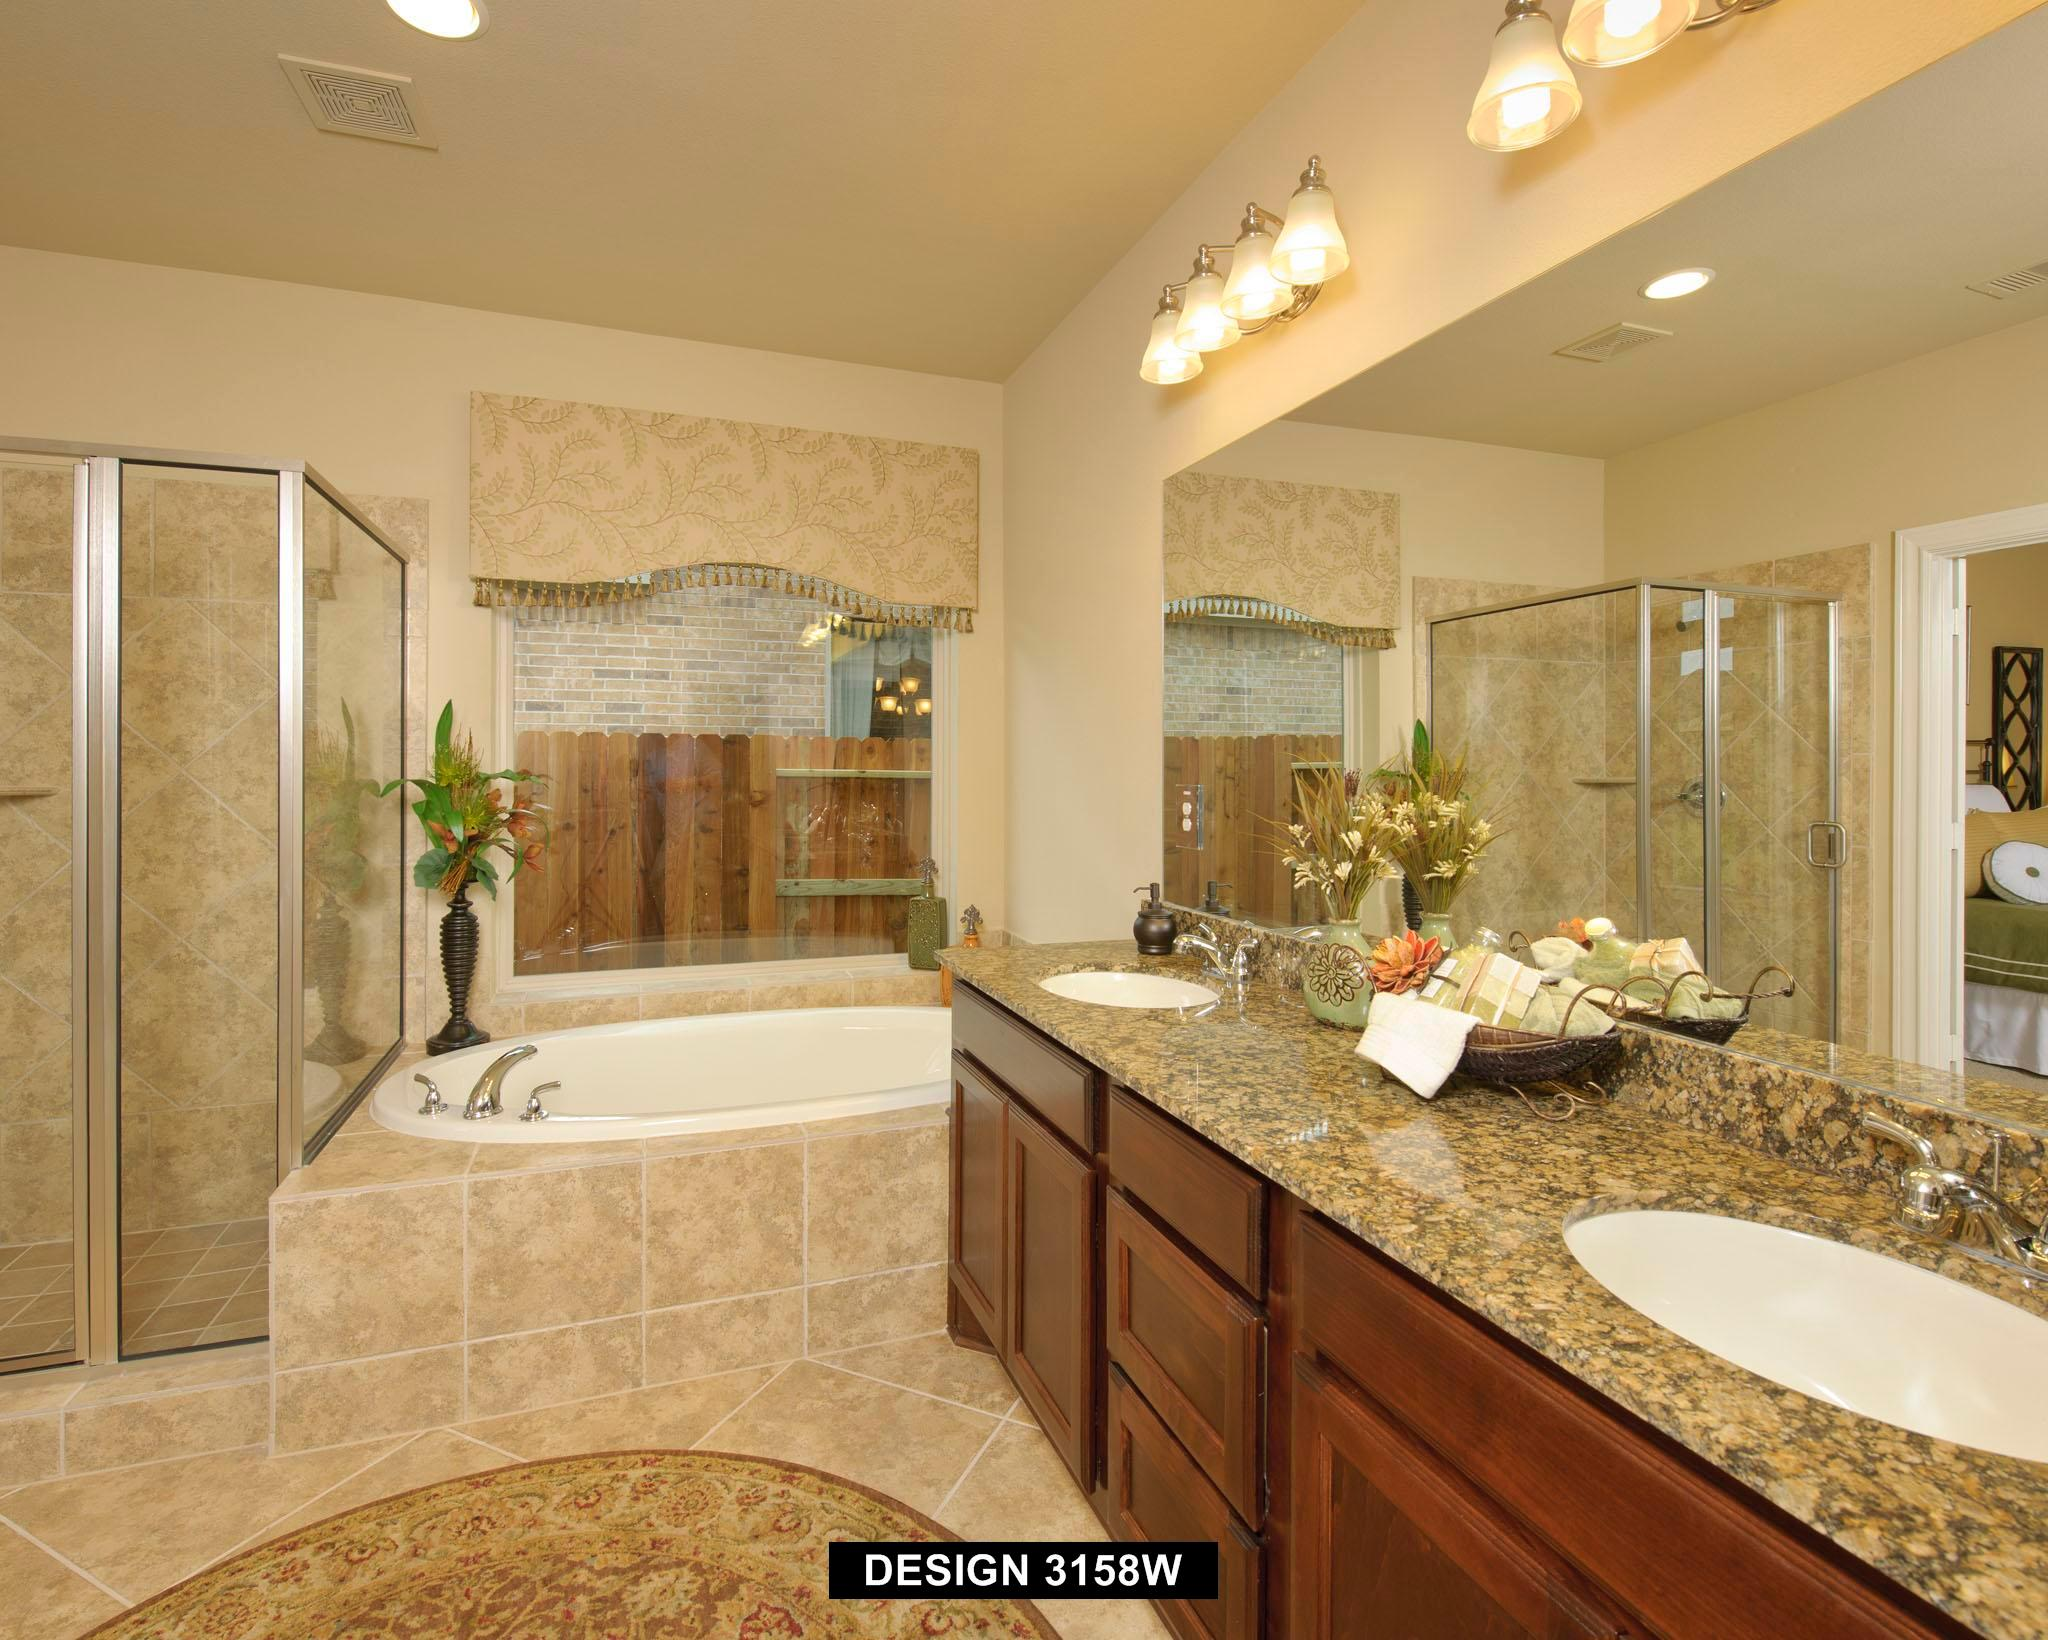 Bathroom featured in the 3158W By Perry Homes in Dallas, TX